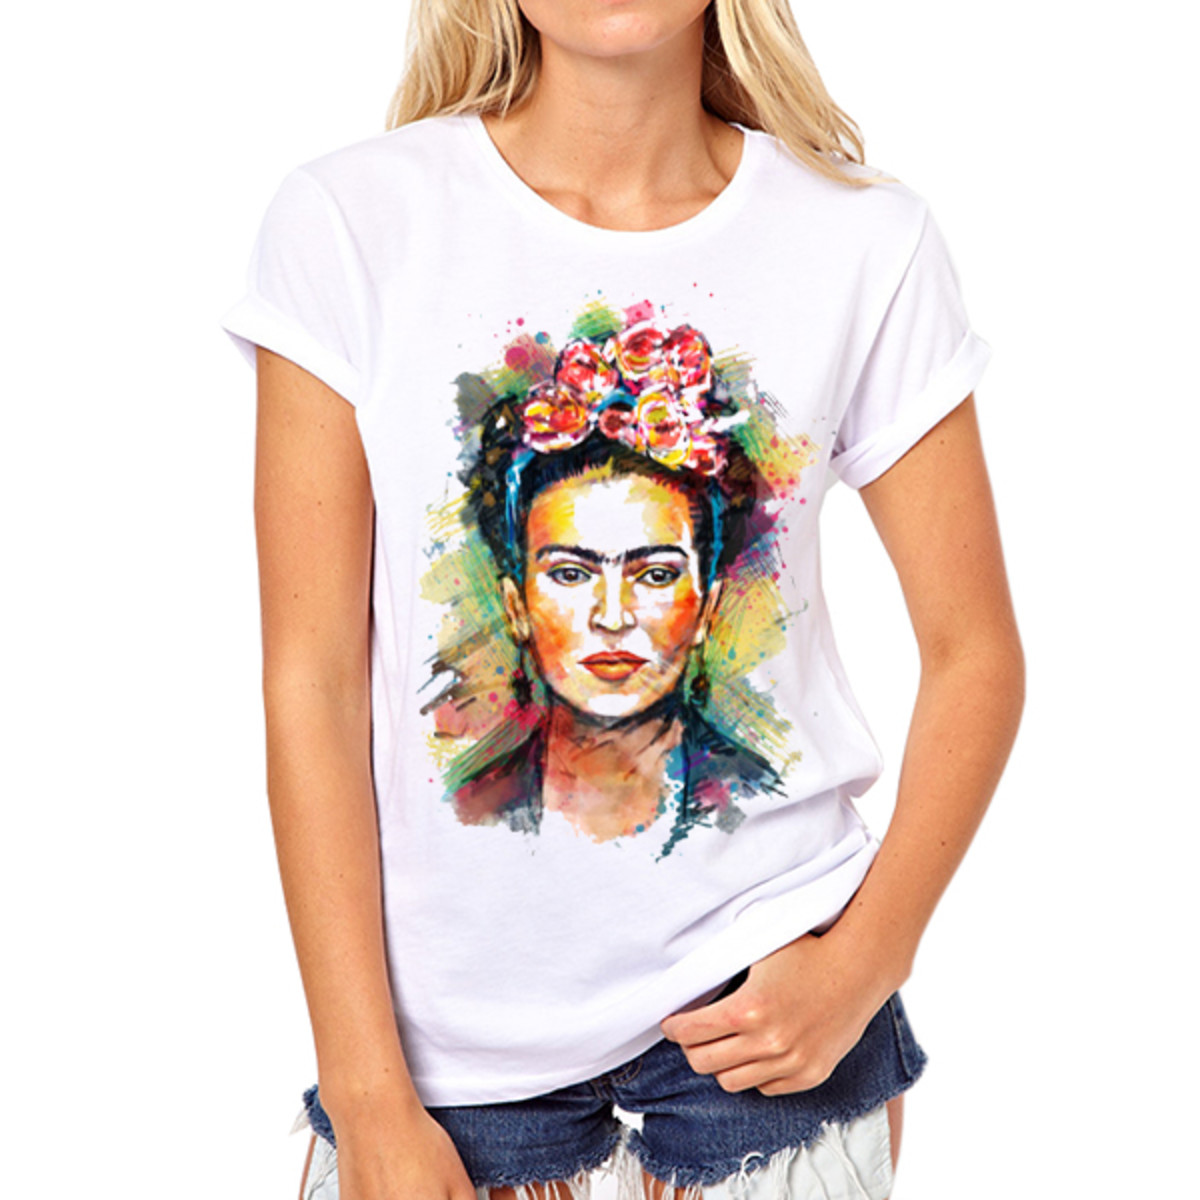 Only one example of the endless Frida merchandise for sale